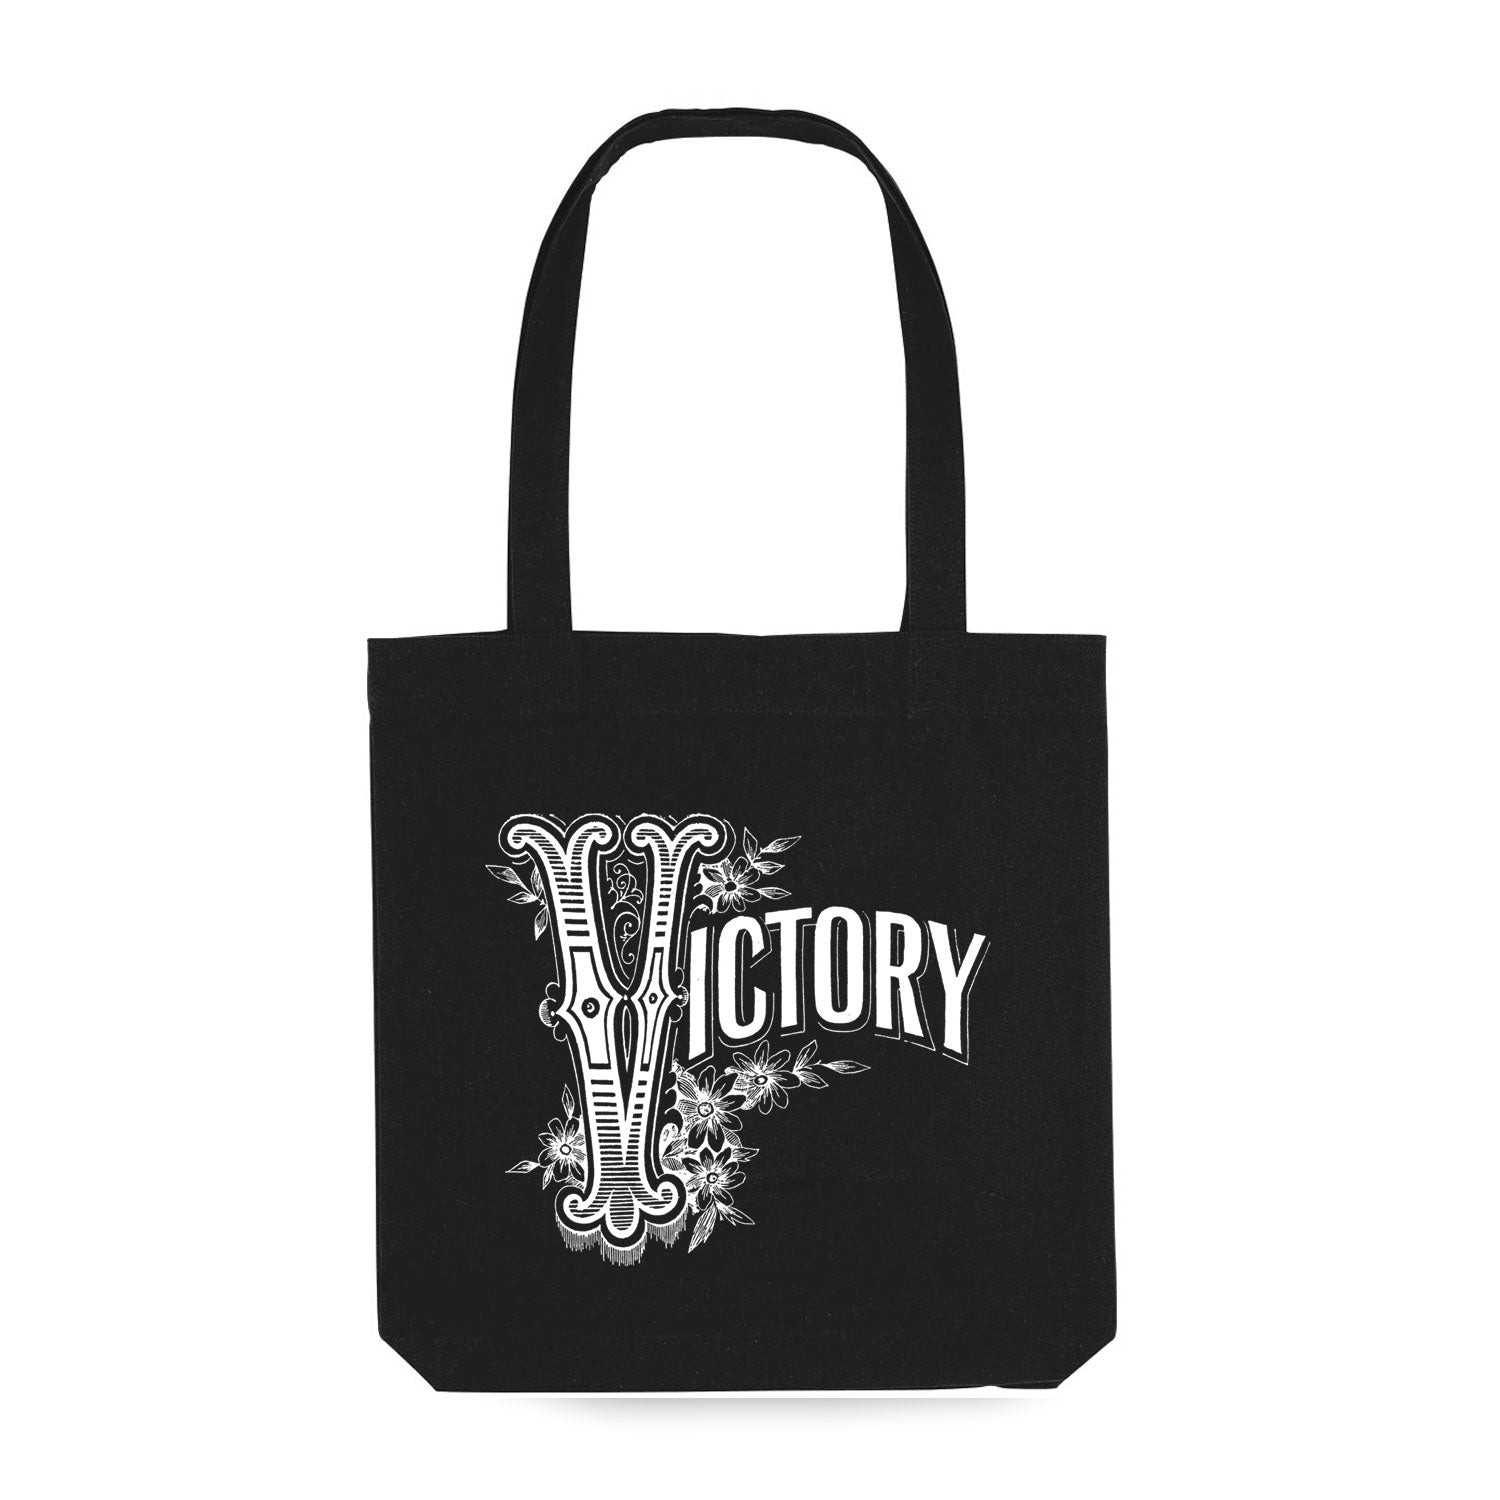 black tote bag with 'victory' on the front in vintage lettering